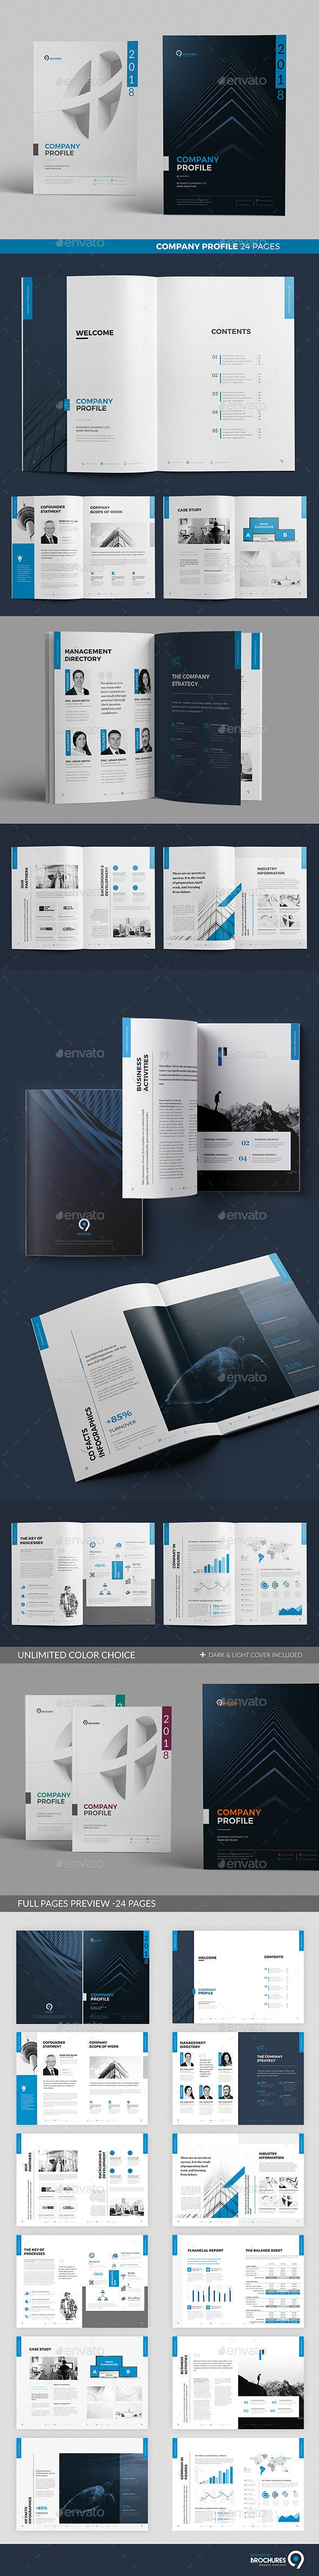 Company Profile Brochure Template InDesign INDD - 24 Custom Layout Pages A4 and US Letter Size